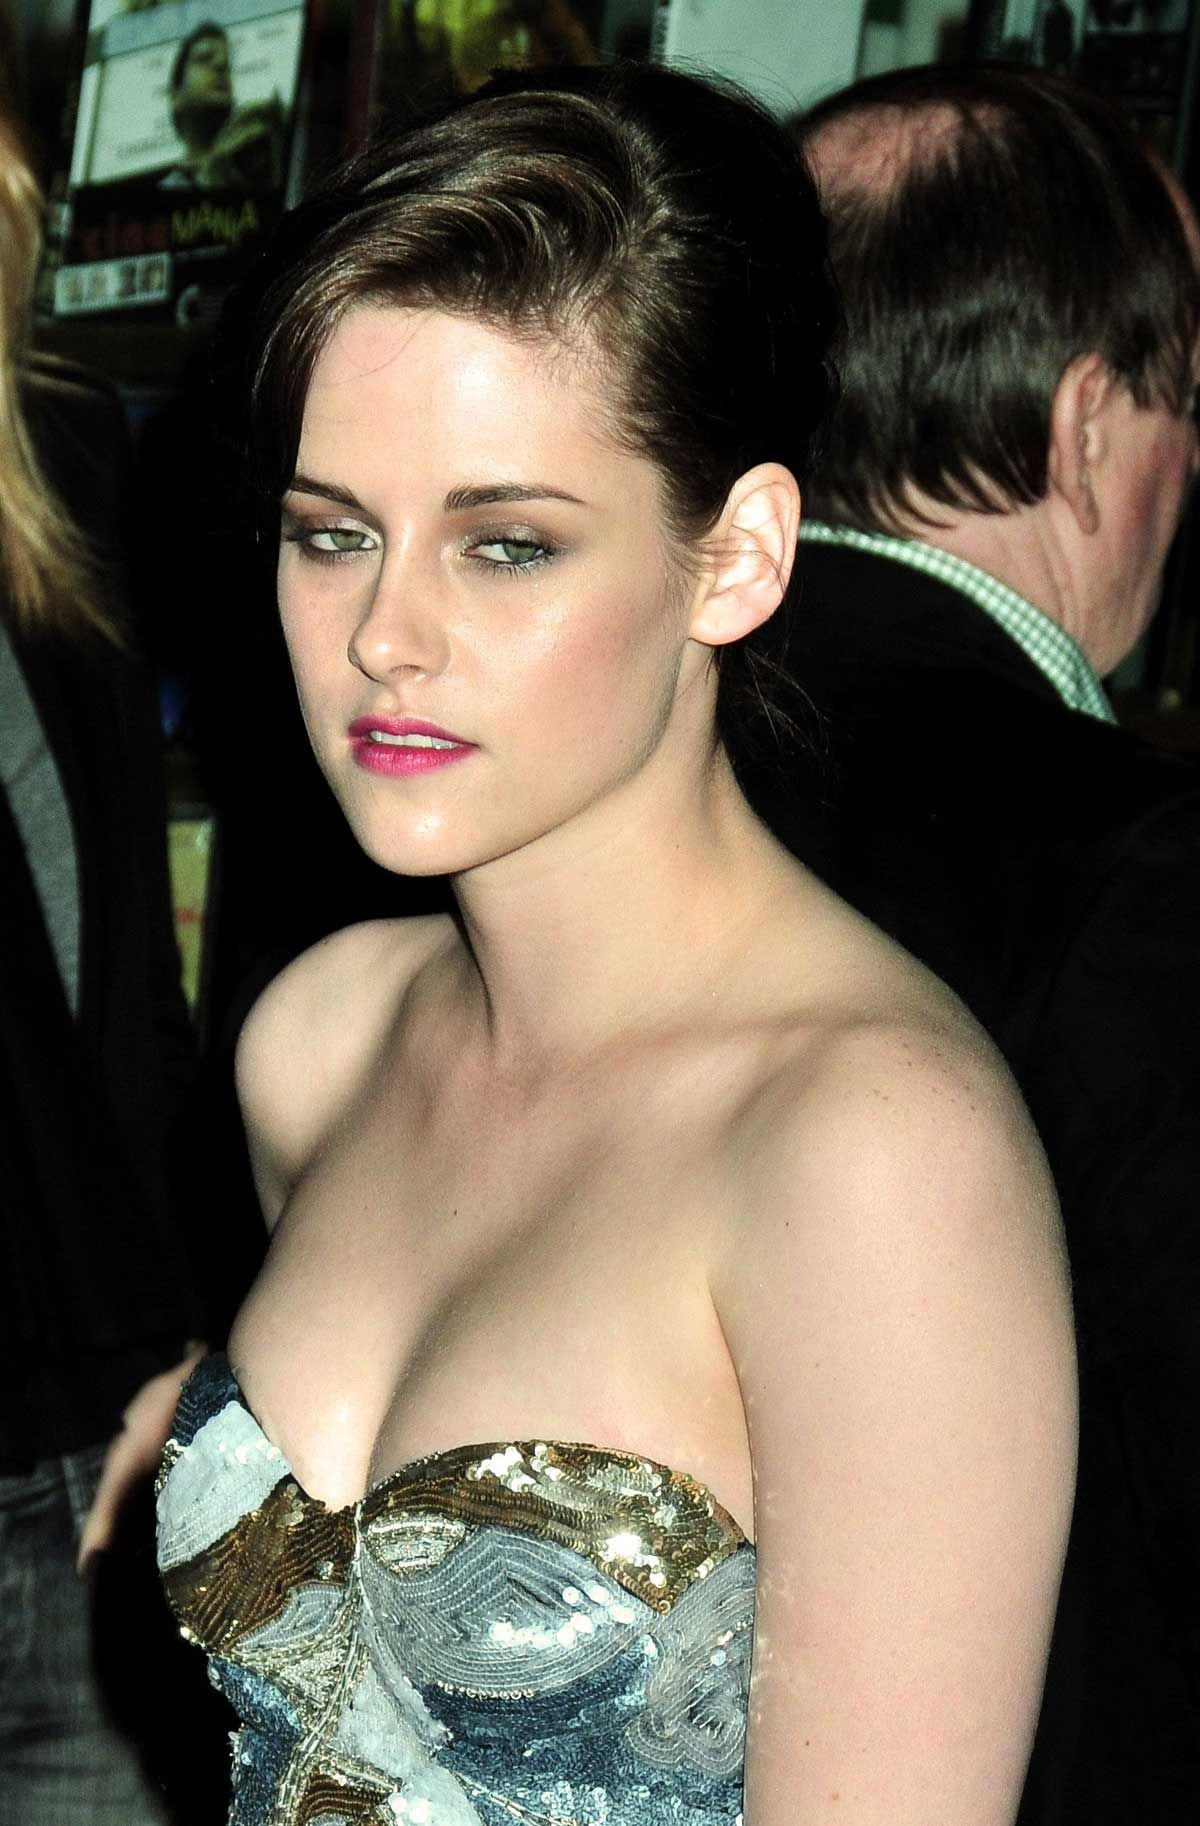 Cleavage Kristen Stewart naked (71 photos), Pussy, Fappening, Feet, braless 2006